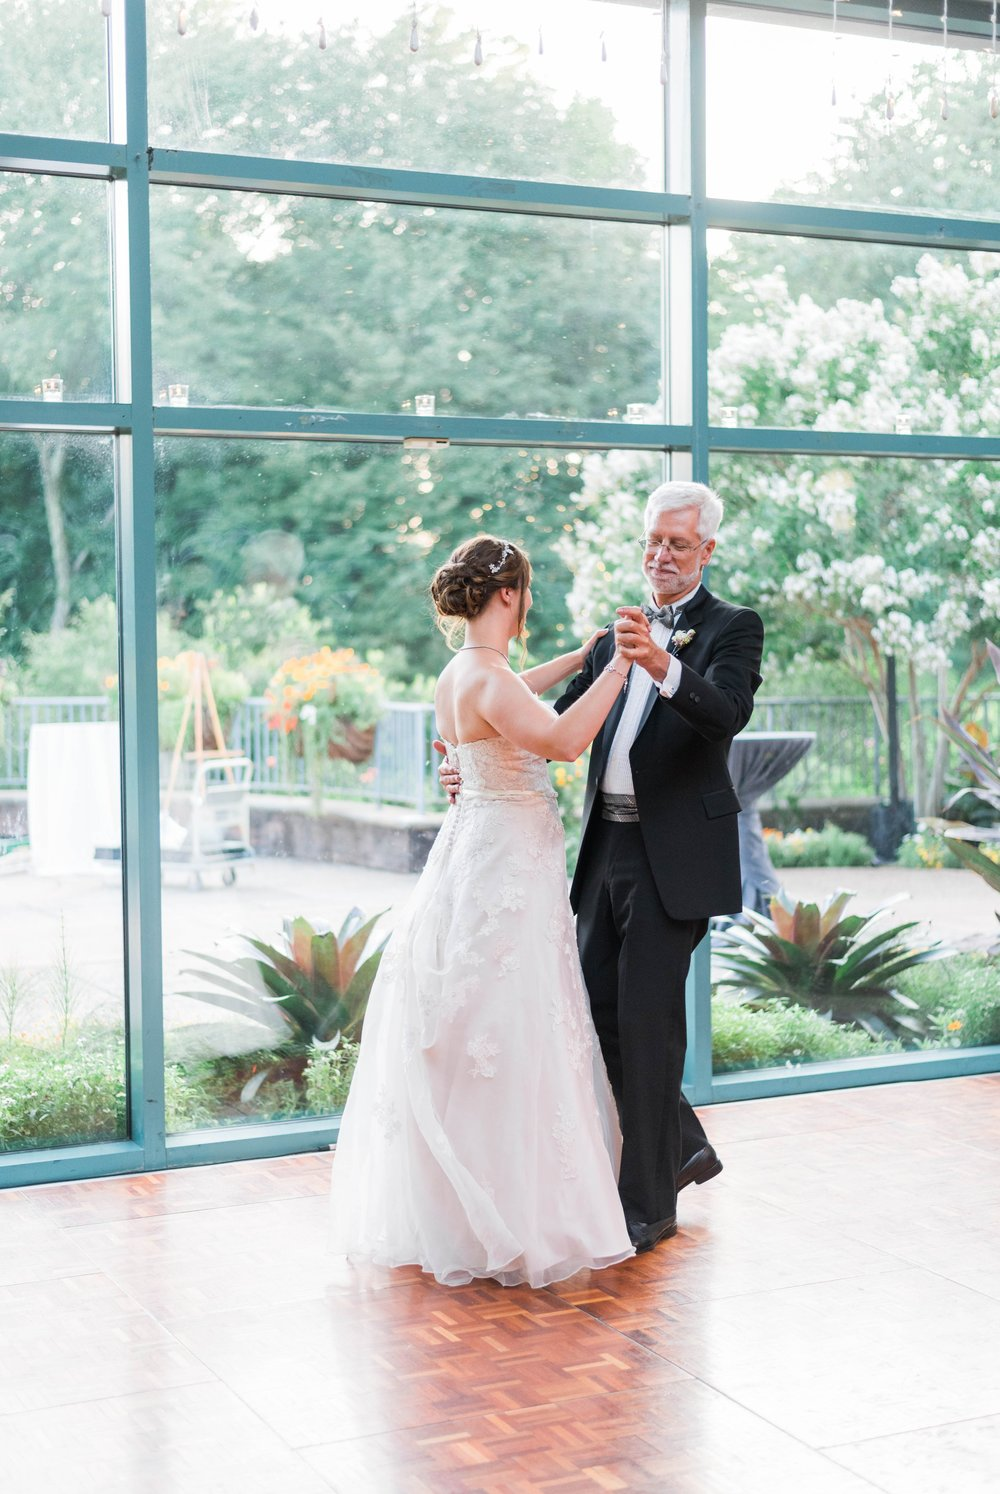 TheAtriumatMeadowlark_Virginiawedding photographer_lynchburgweddingphotographer_DCweddingPhotographer_KristinAaron 45.jpg